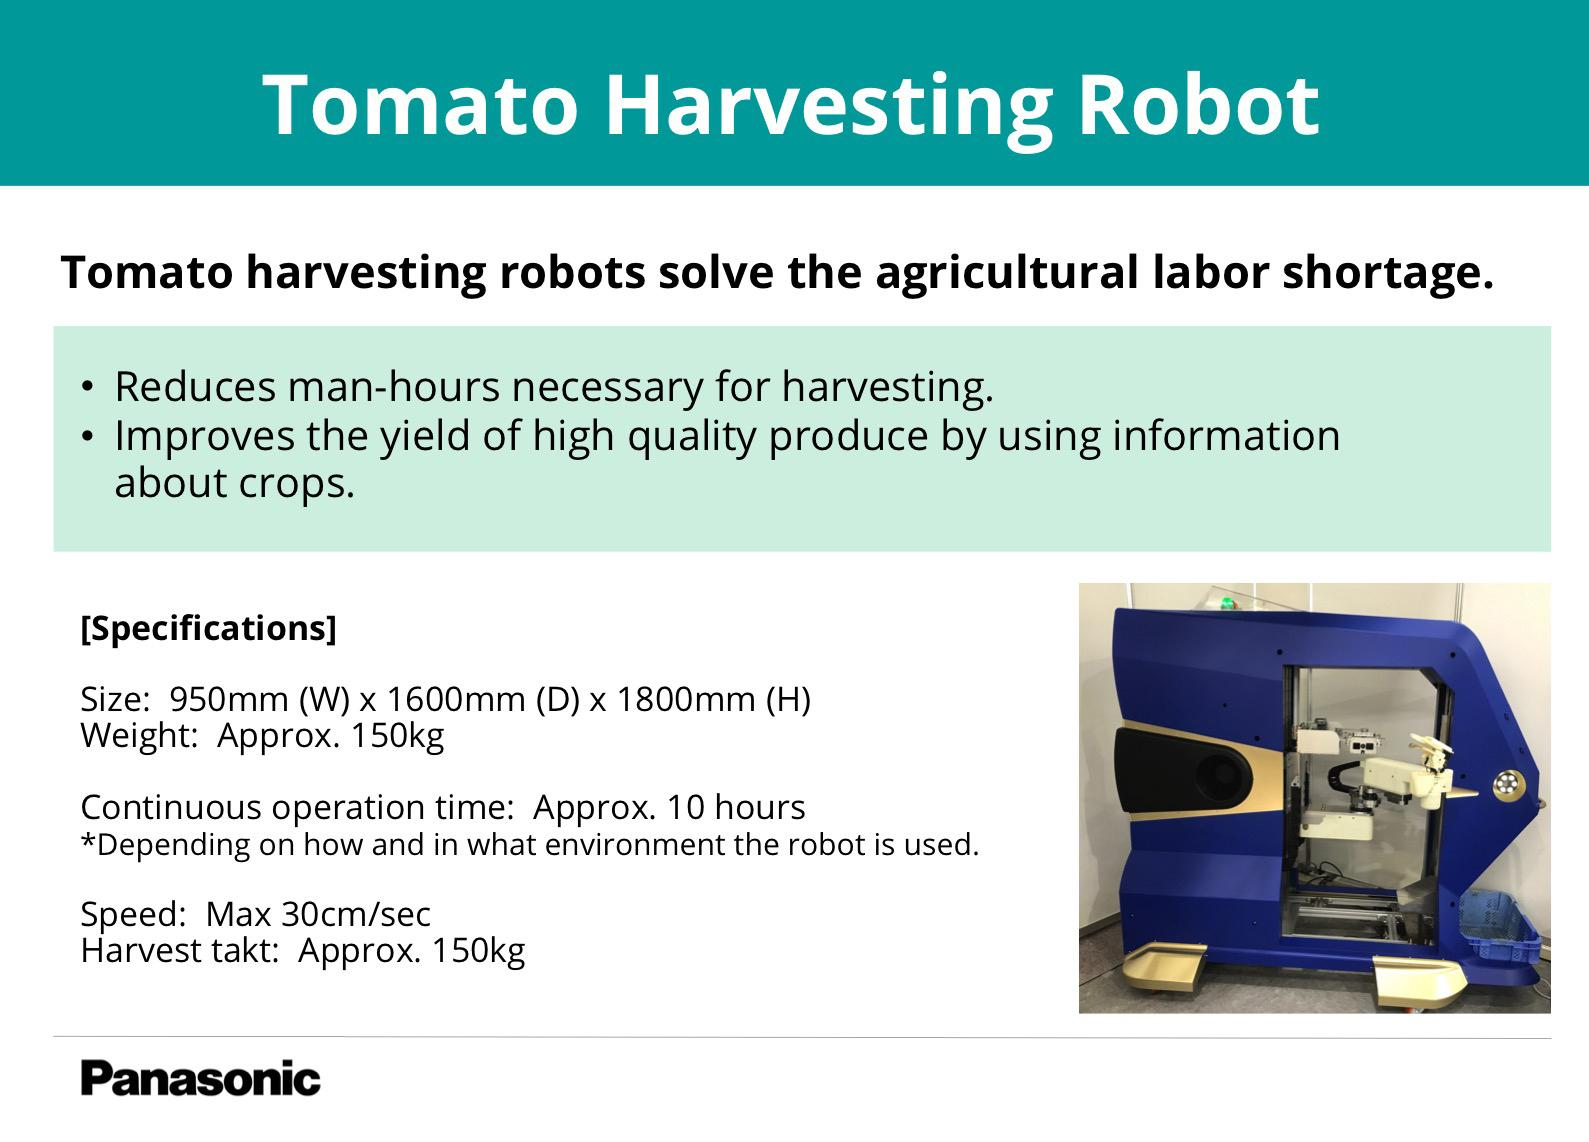 photo: Tomato Harvesting Robot